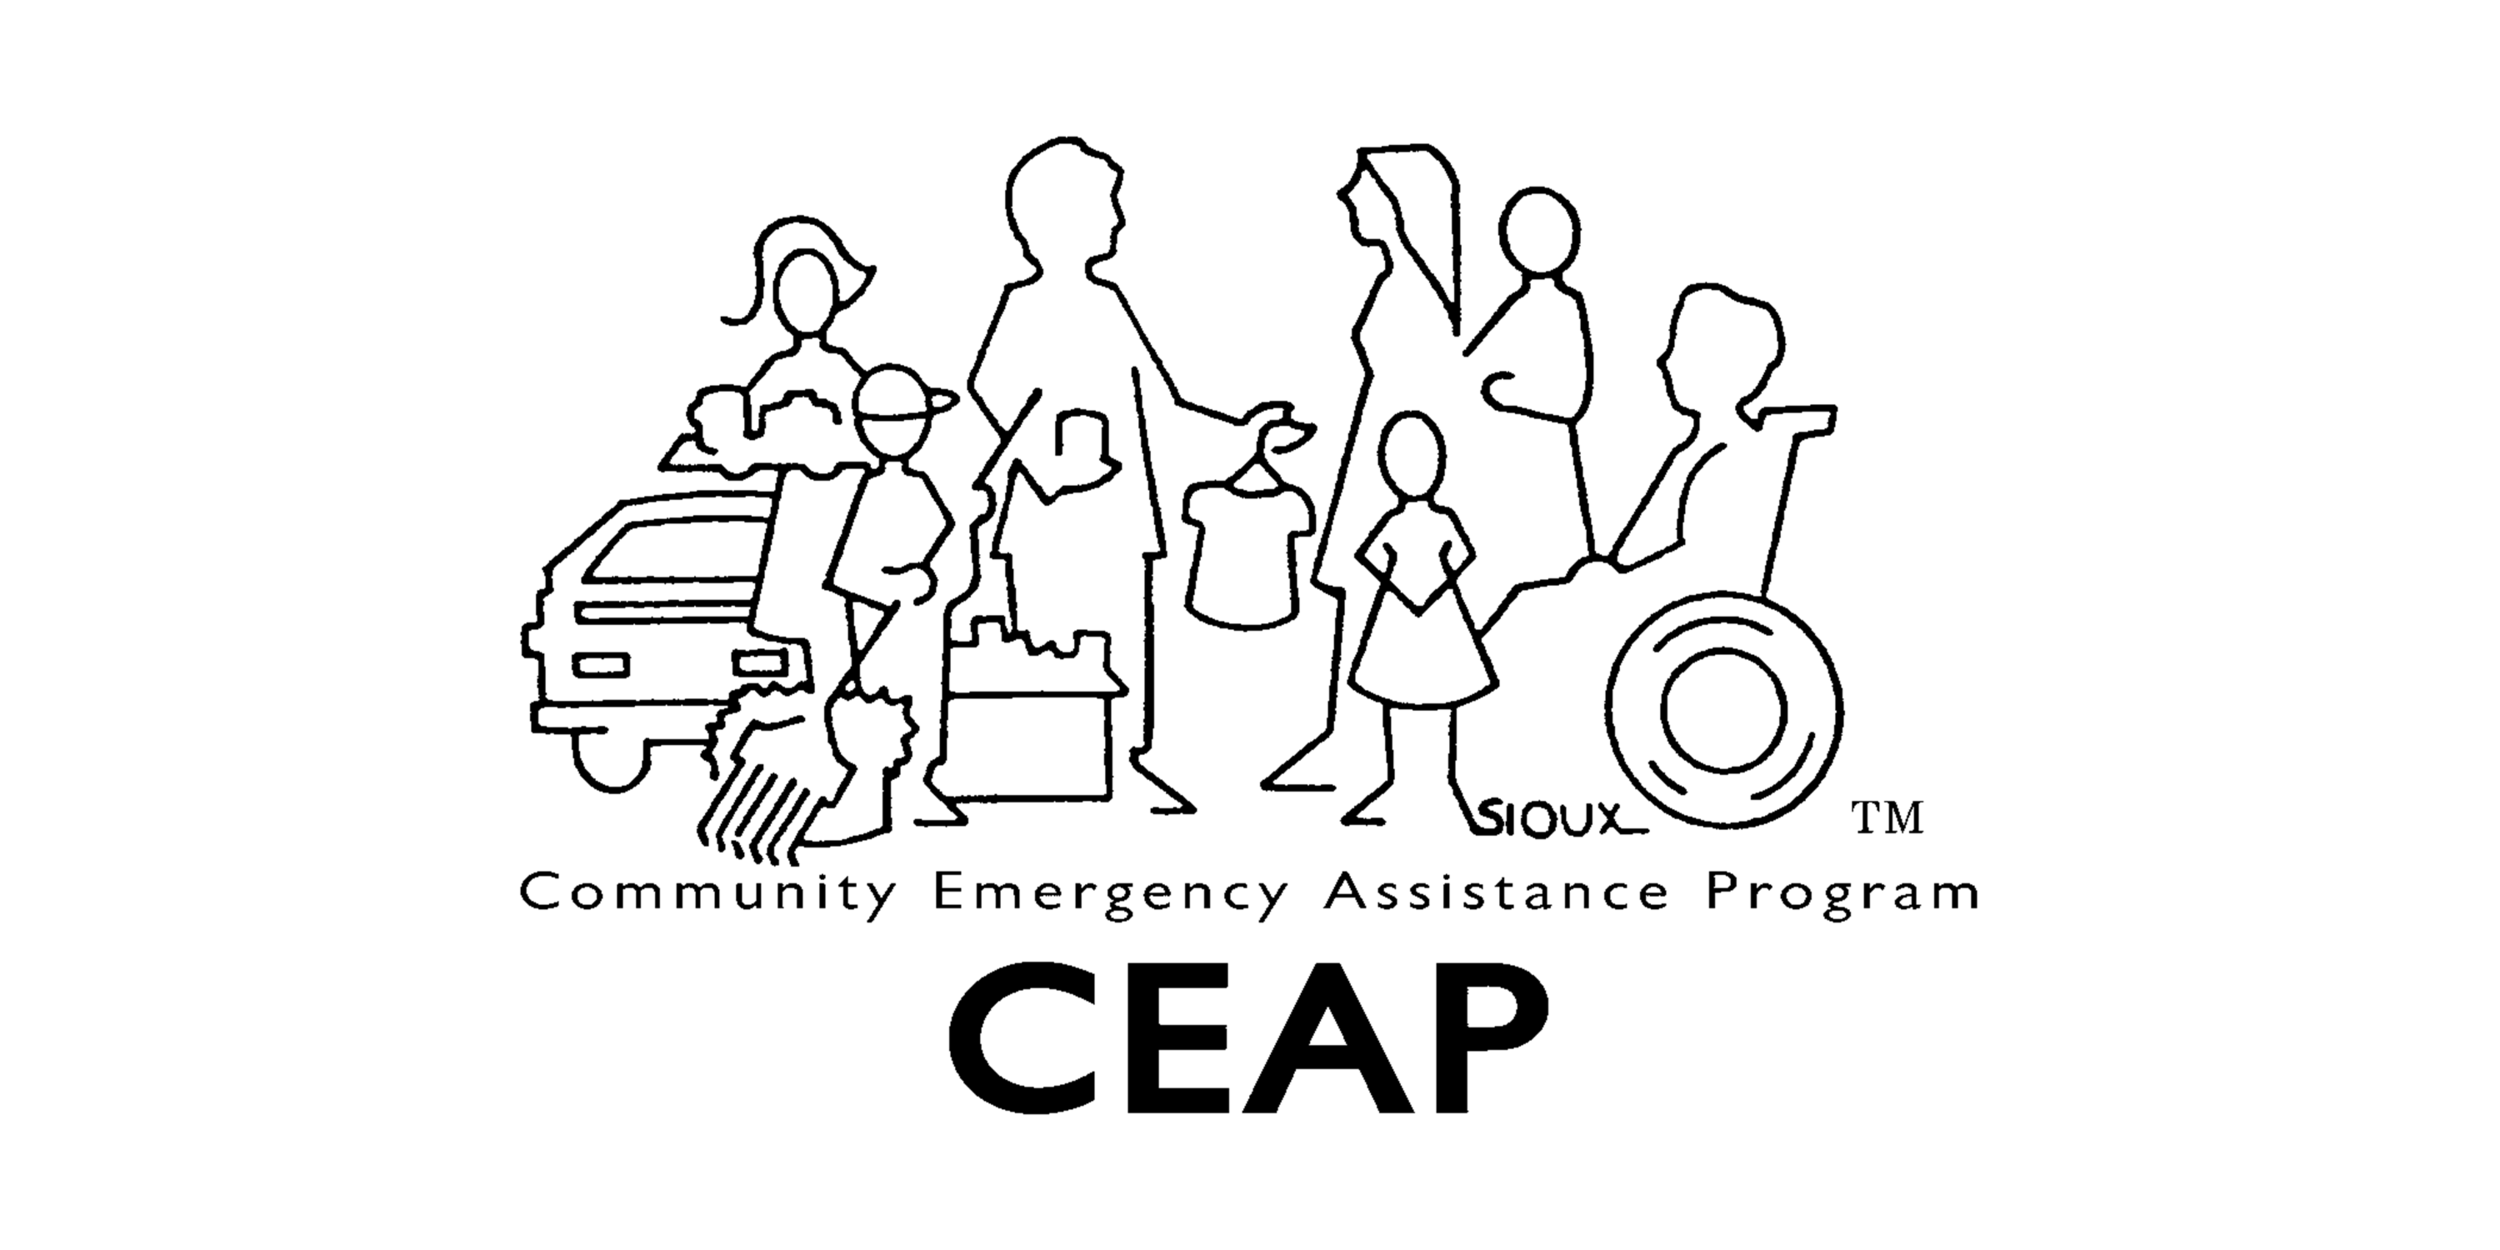 CEAP - Before